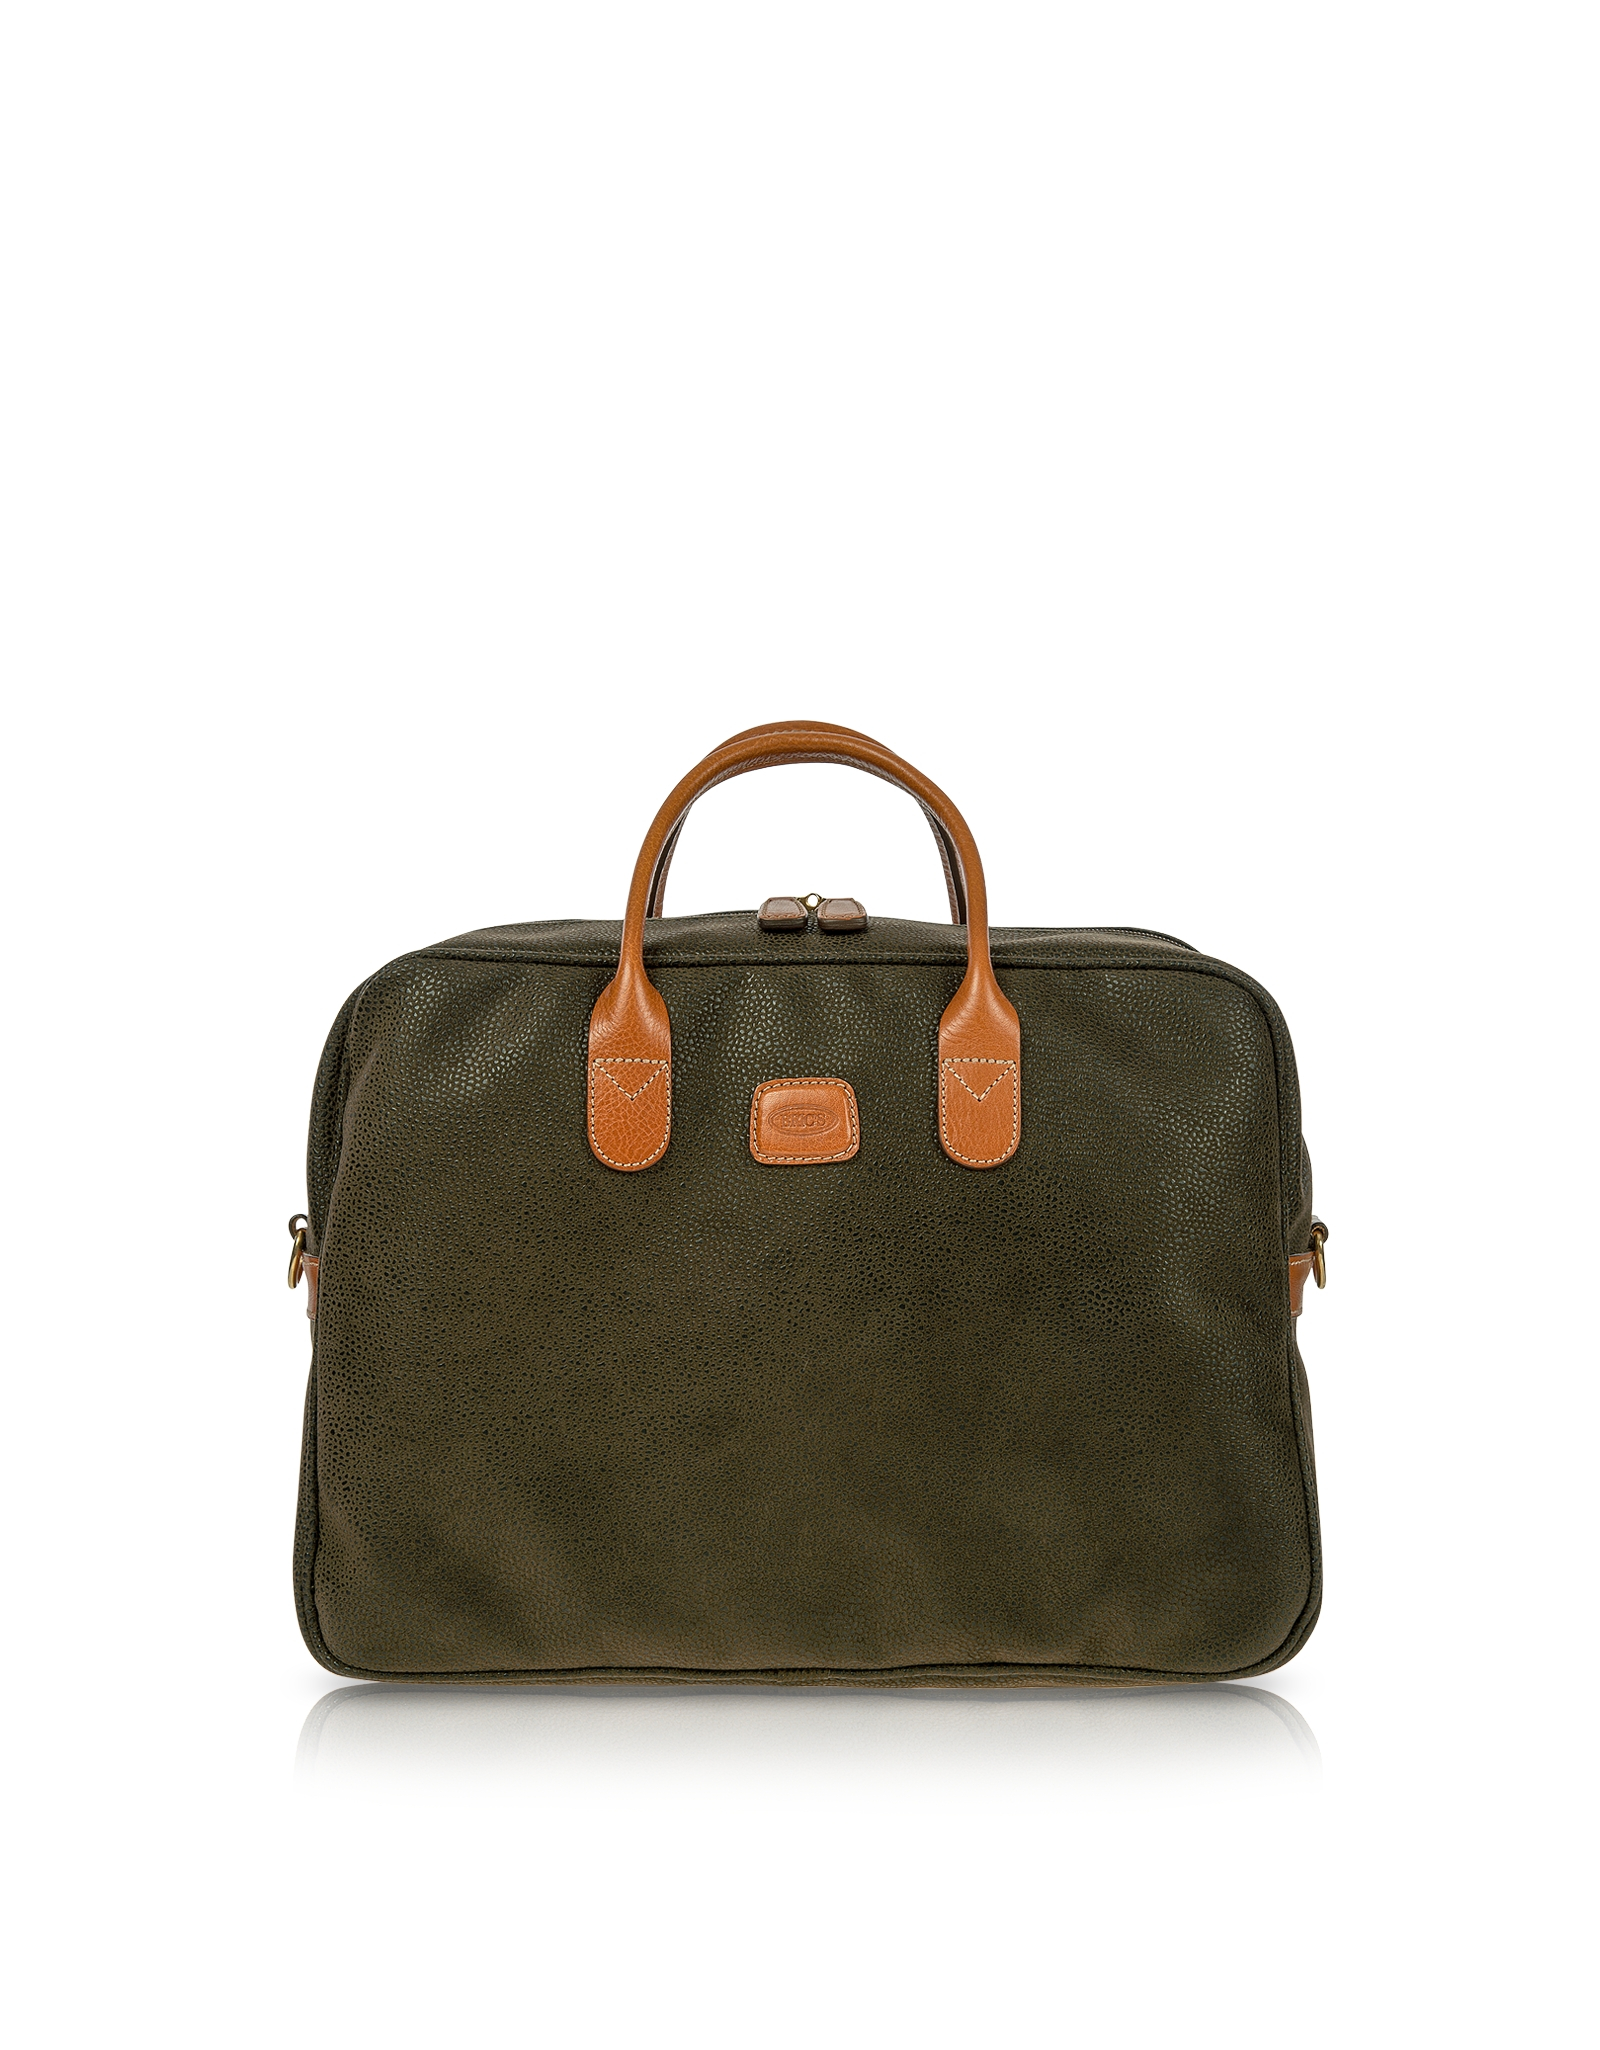 67d571424152 Green Suede Handbags Uk | Stanford Center for Opportunity Policy in ...